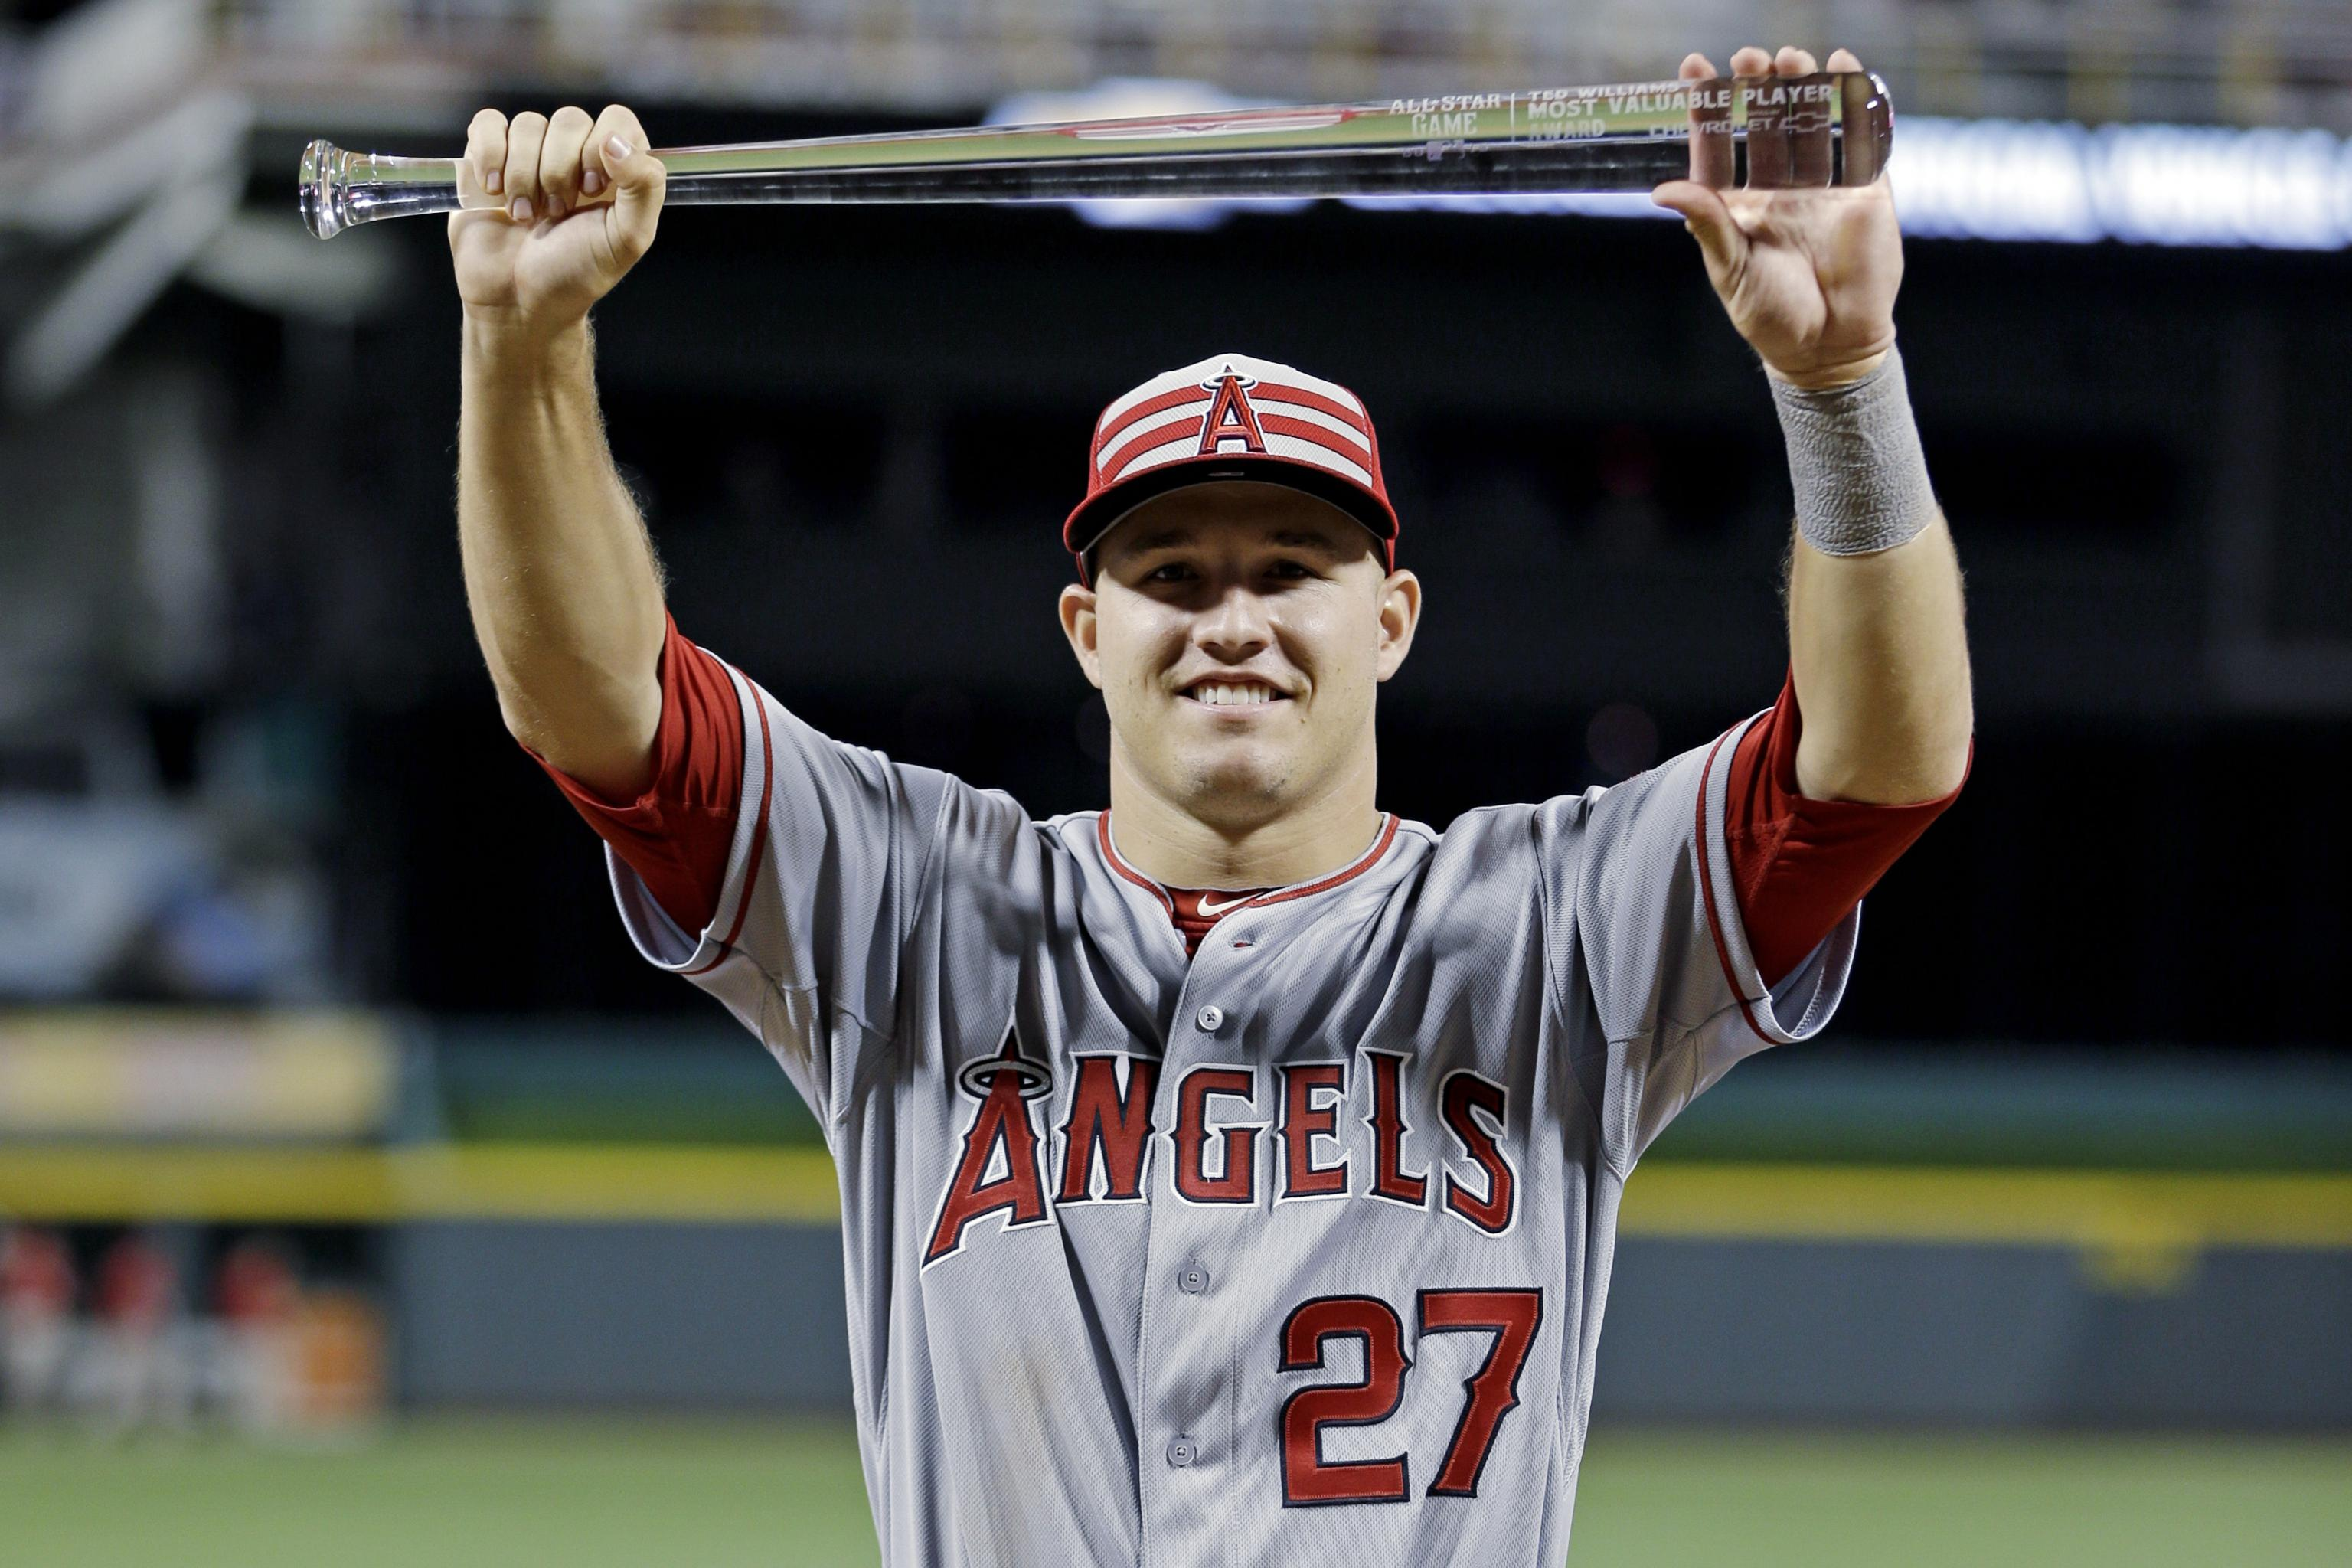 competitive price f08cb b4ff9 MLB All-Star Game 2015 MVP: Mike Trout's Stats, Highlights ...